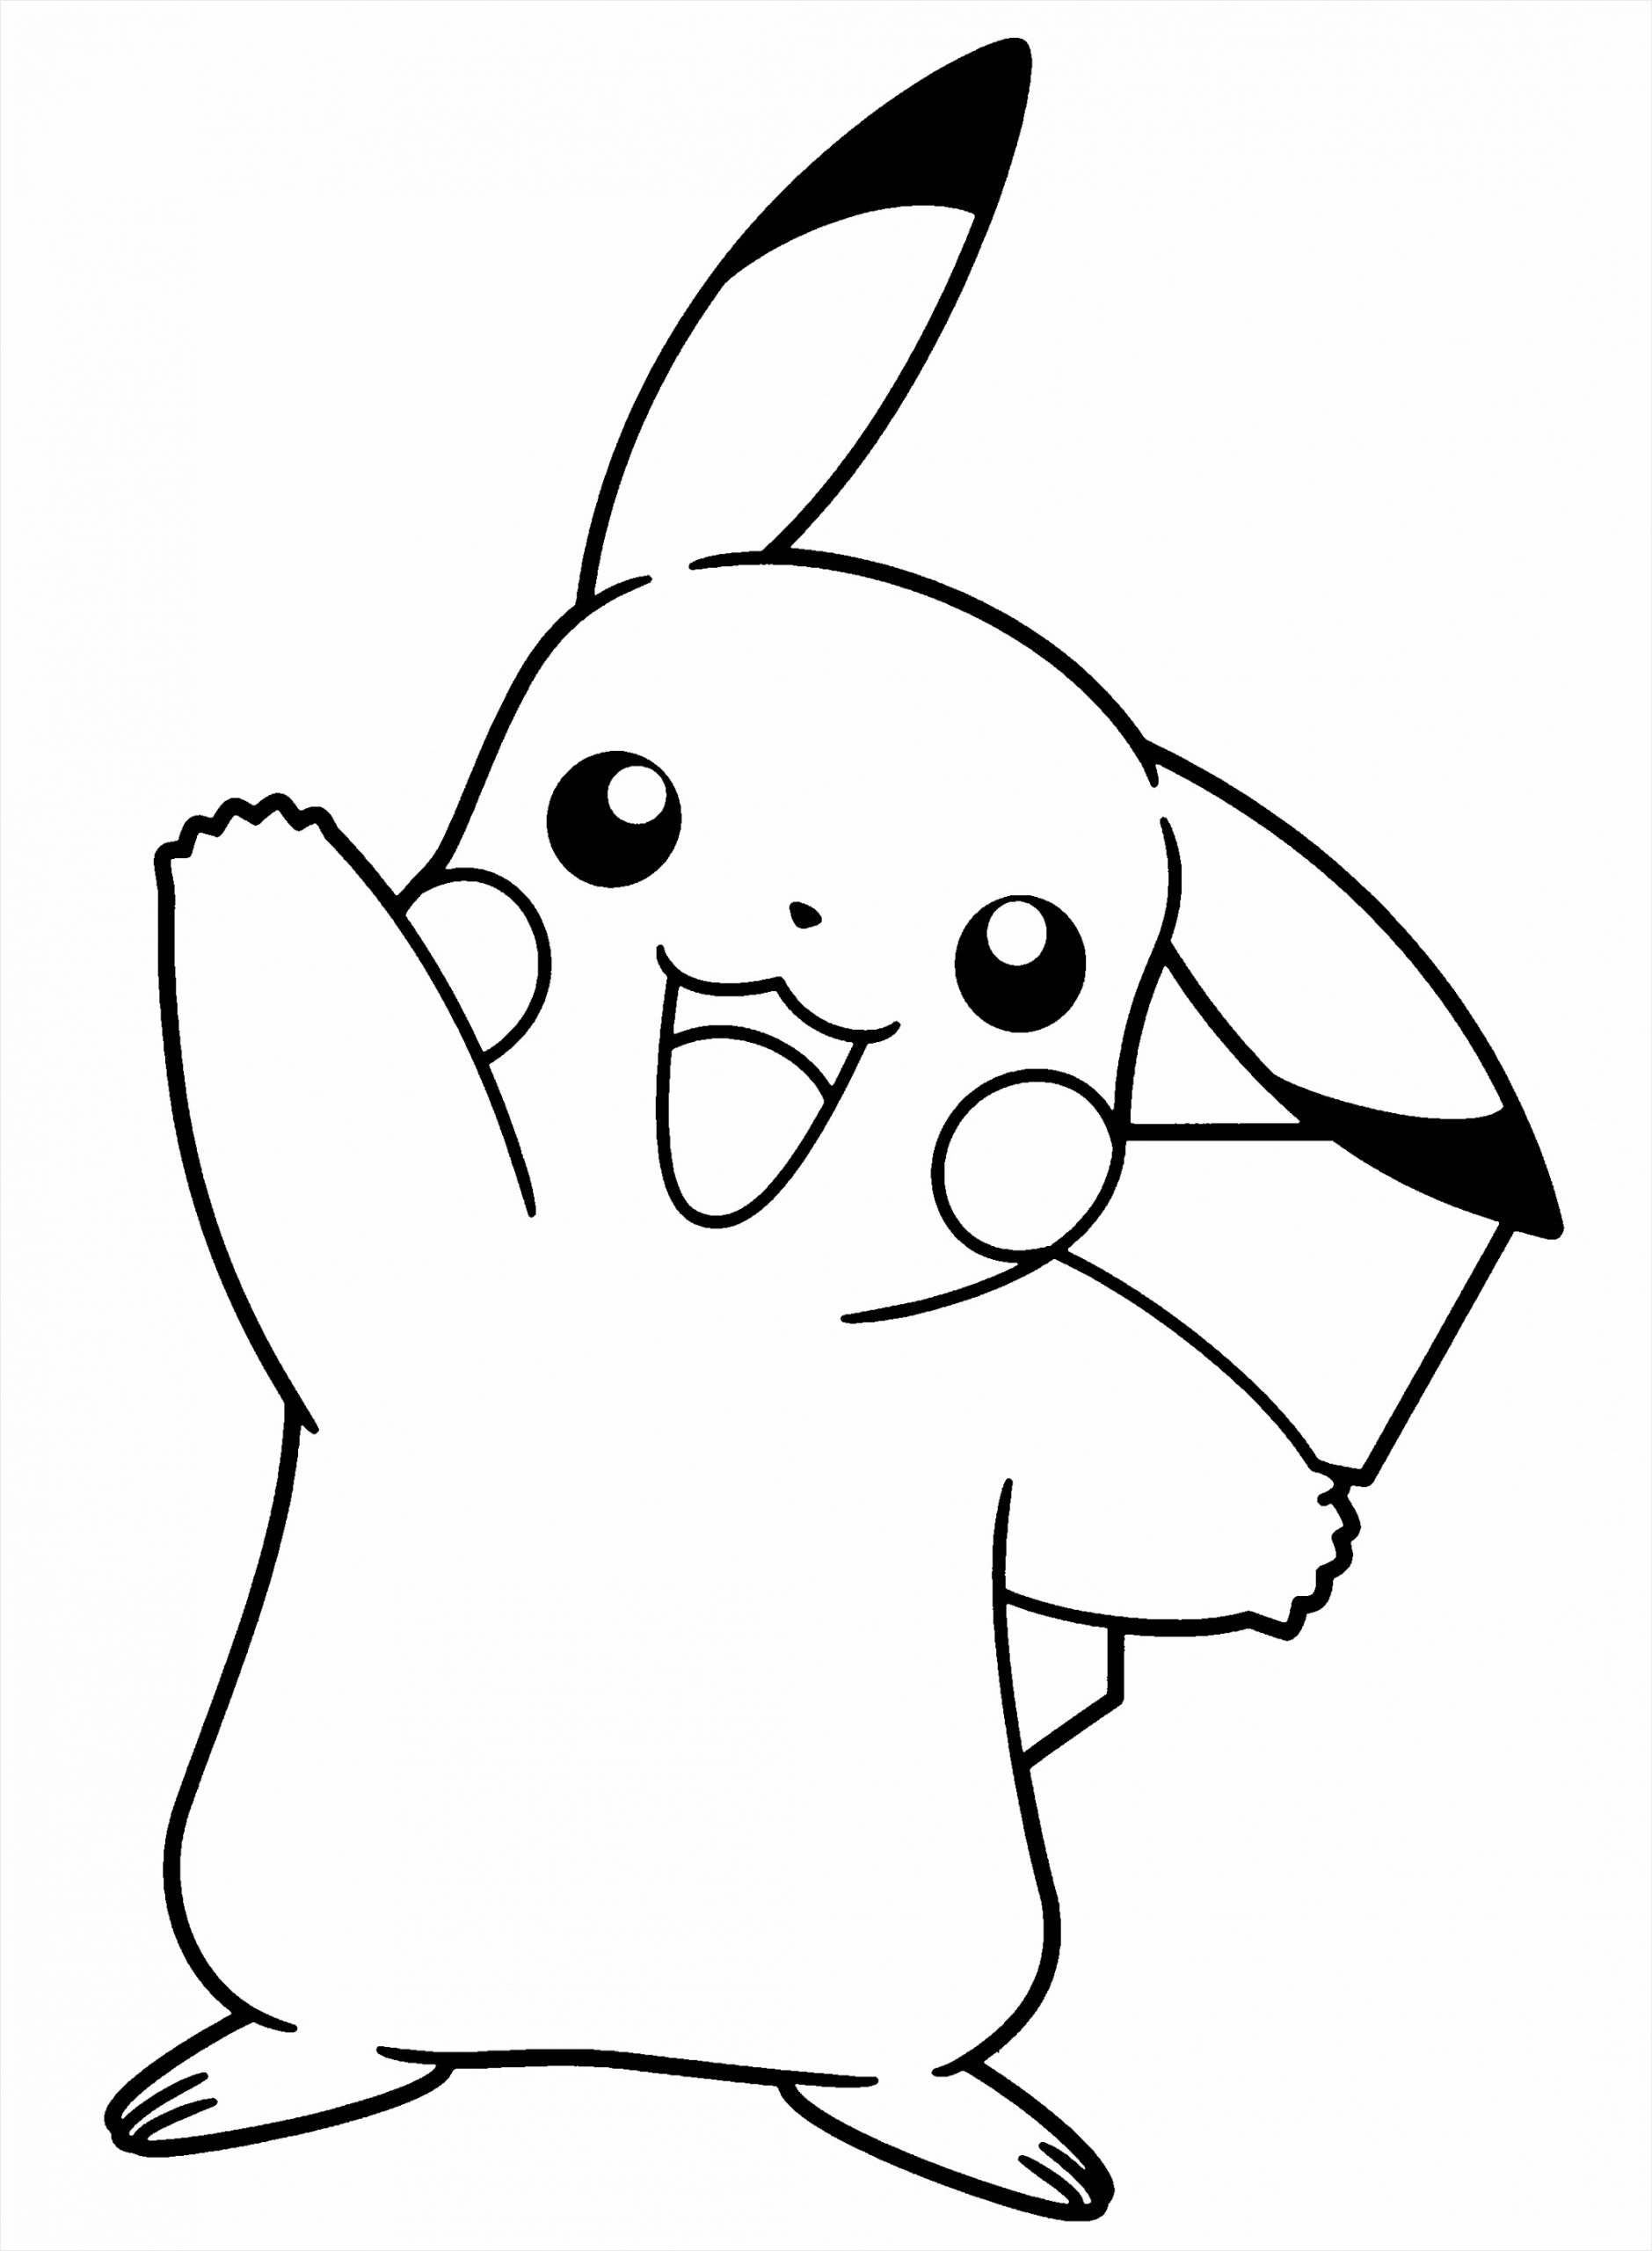 pokemon characters clipart black and white wuiow